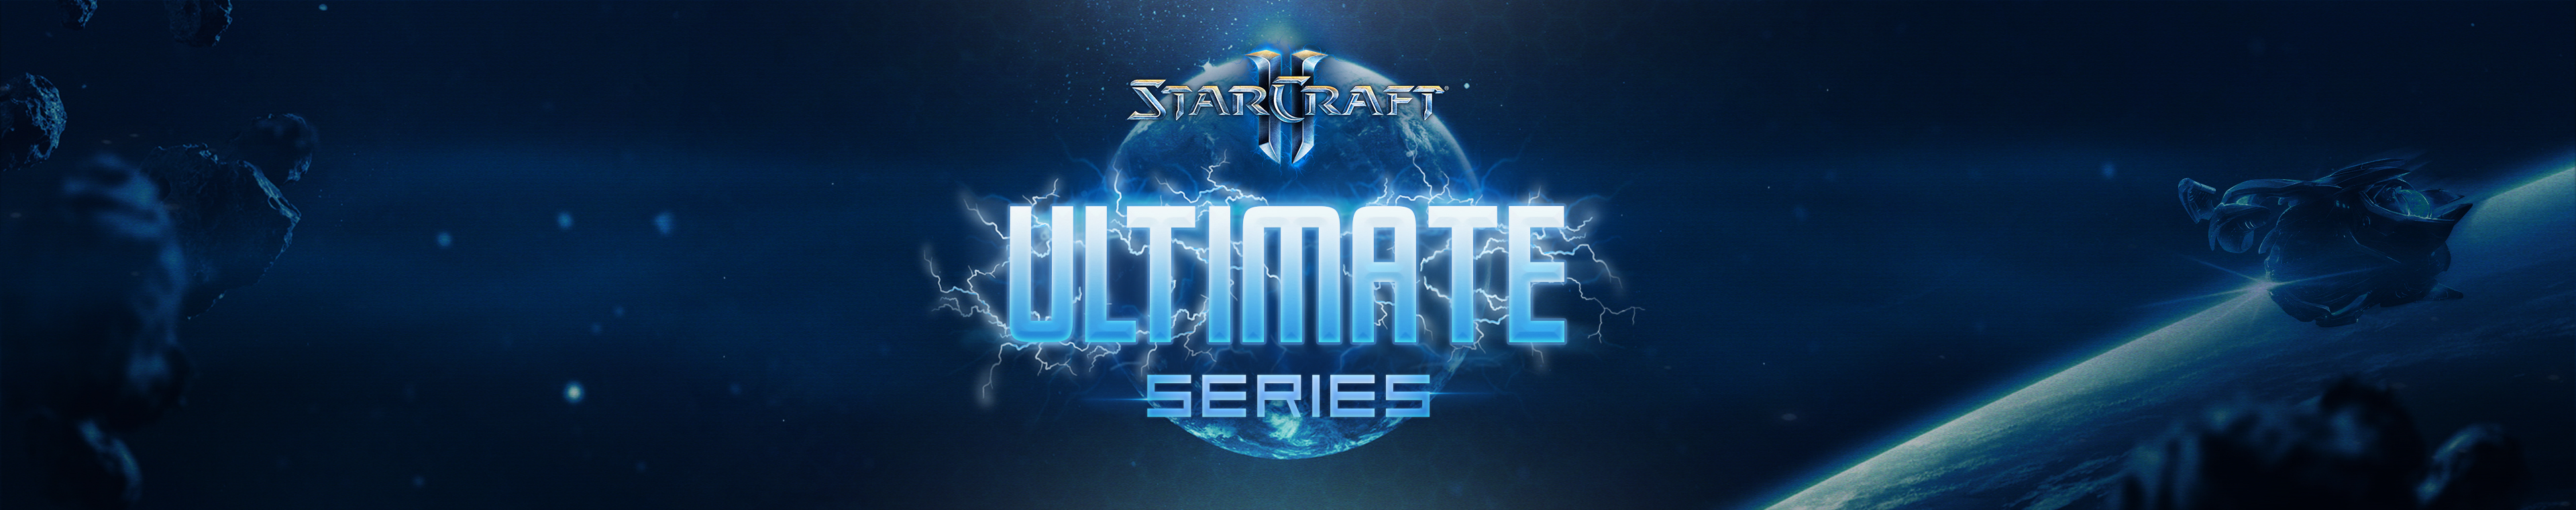 Ultimate Series 2018 Season 2 - NA